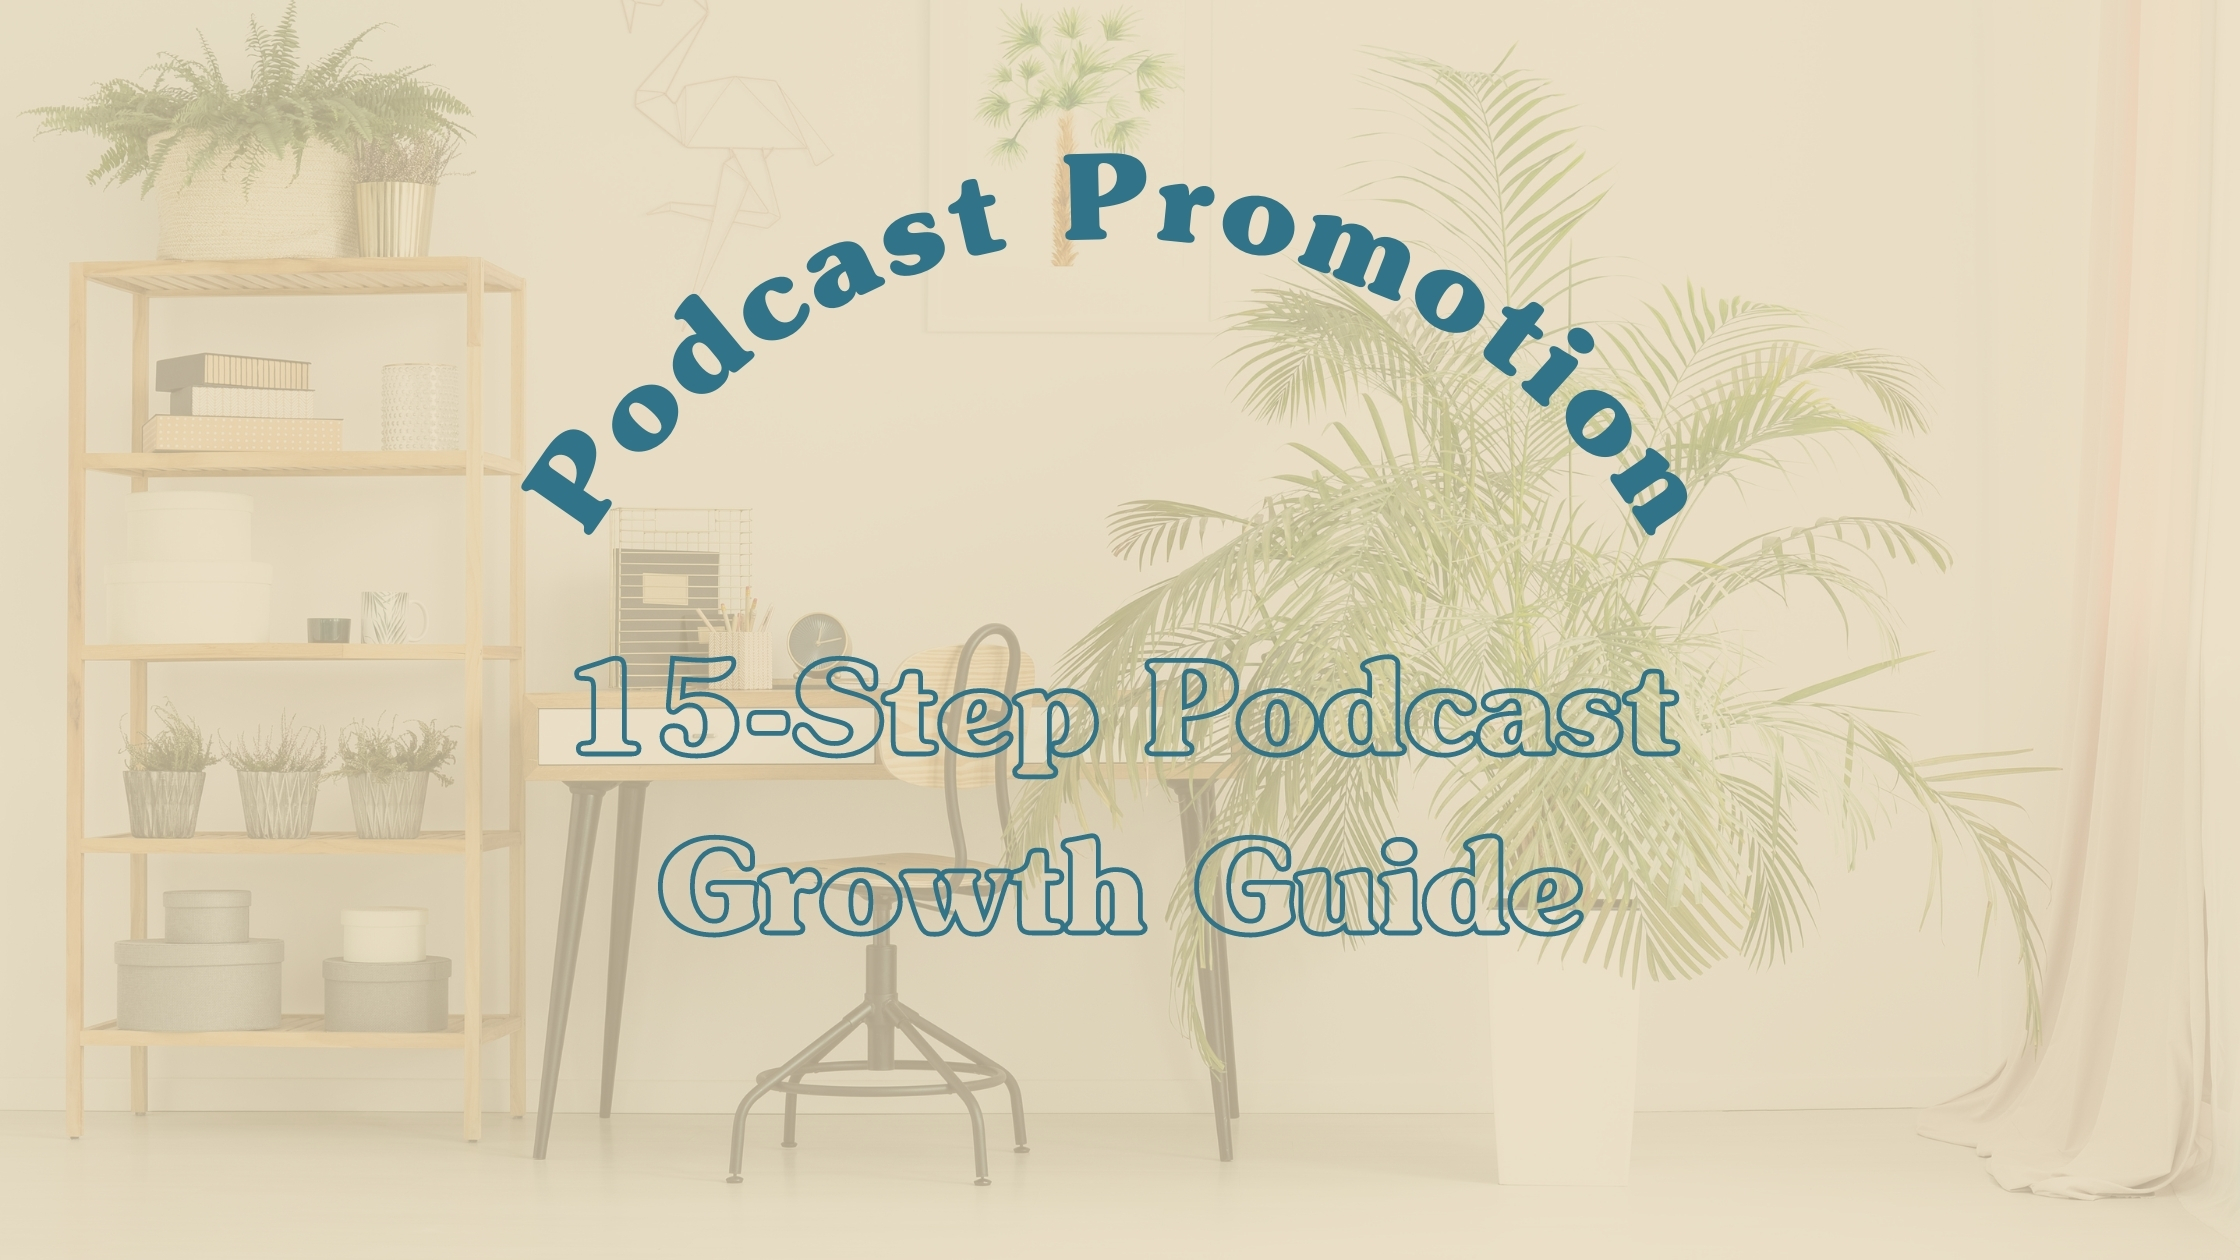 15-Step Podcast Growth Guide